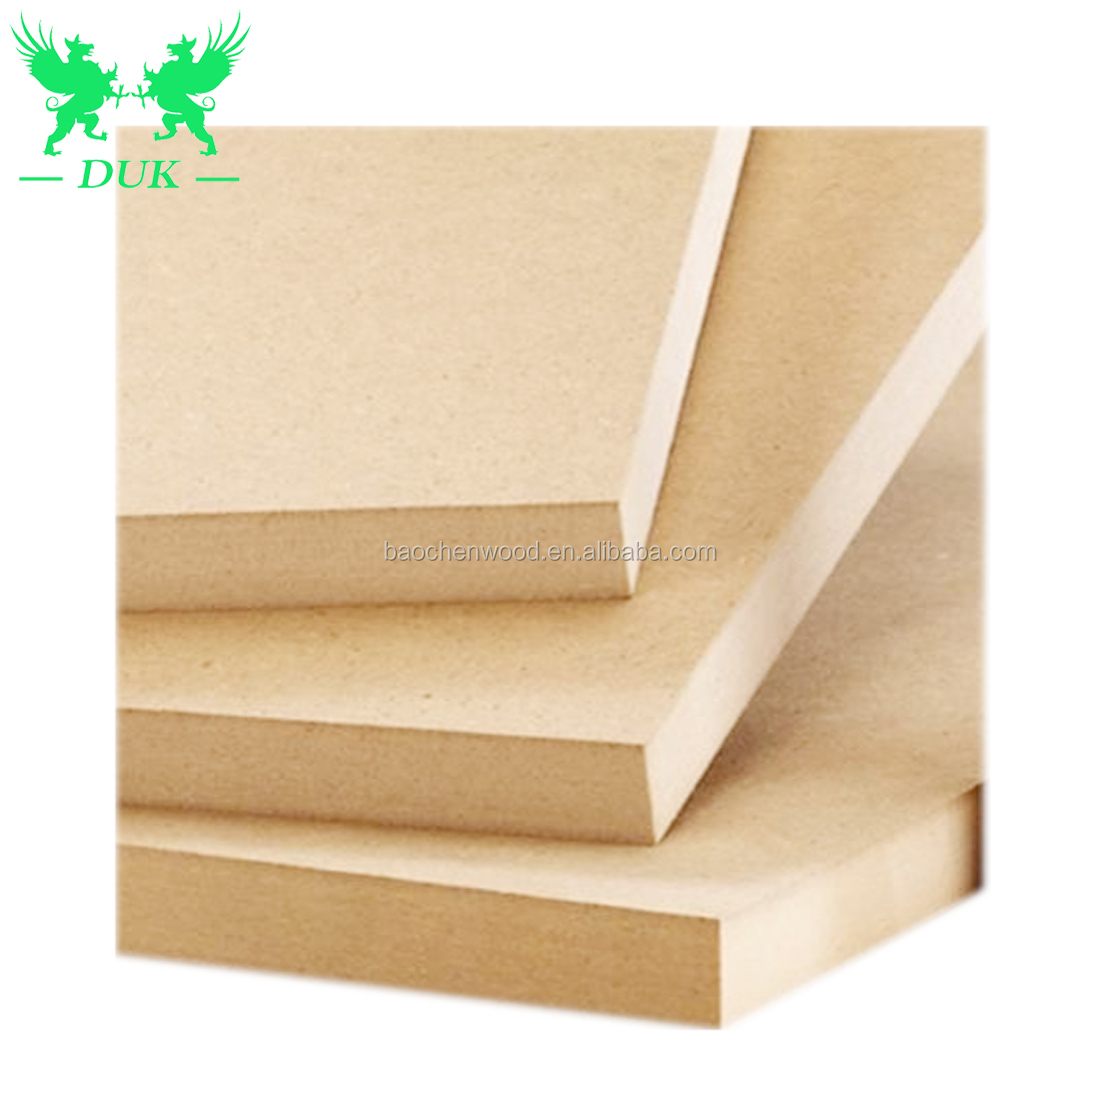 Plain <strong>Mdf</strong> Board For Furniture, High Quality <strong>Mdf</strong> Board China <strong>Prices</strong>